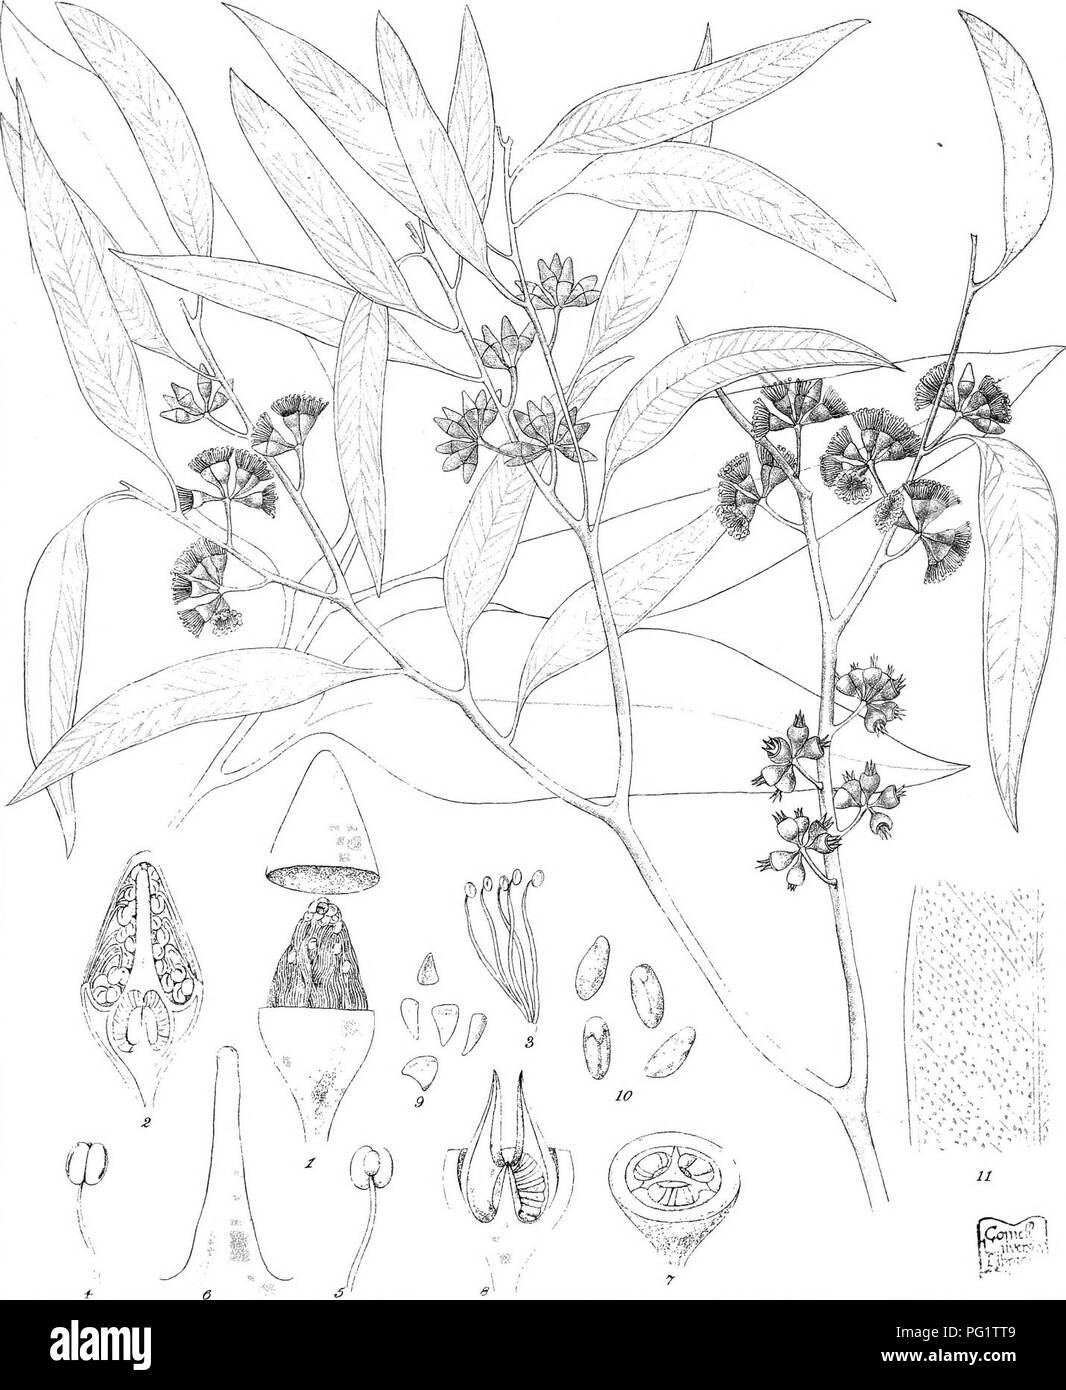 . Eucalyptographia. A descriptive atlas of the eucalypts of Australia and the adjoining islands;. Eucalyptus; Botany. -Trt-ck-.l ,â C^LlTK F-:-K diT-> ii - Sleam Lilho Ooy PrmUn^ Off ic.' K'!^': iKguljjpteg ^jm(D)m(c)g)Mi(o))m. />#. Please note that these images are extracted from scanned page images that may have been digitally enhanced for readability - coloration and appearance of these illustrations may not perfectly resemble the original work.. Mueller, Ferdinand von, 1825-1896. Melbourne, J. Ferres, Govt. Print; [etc. ,etc. ] - Stock Image